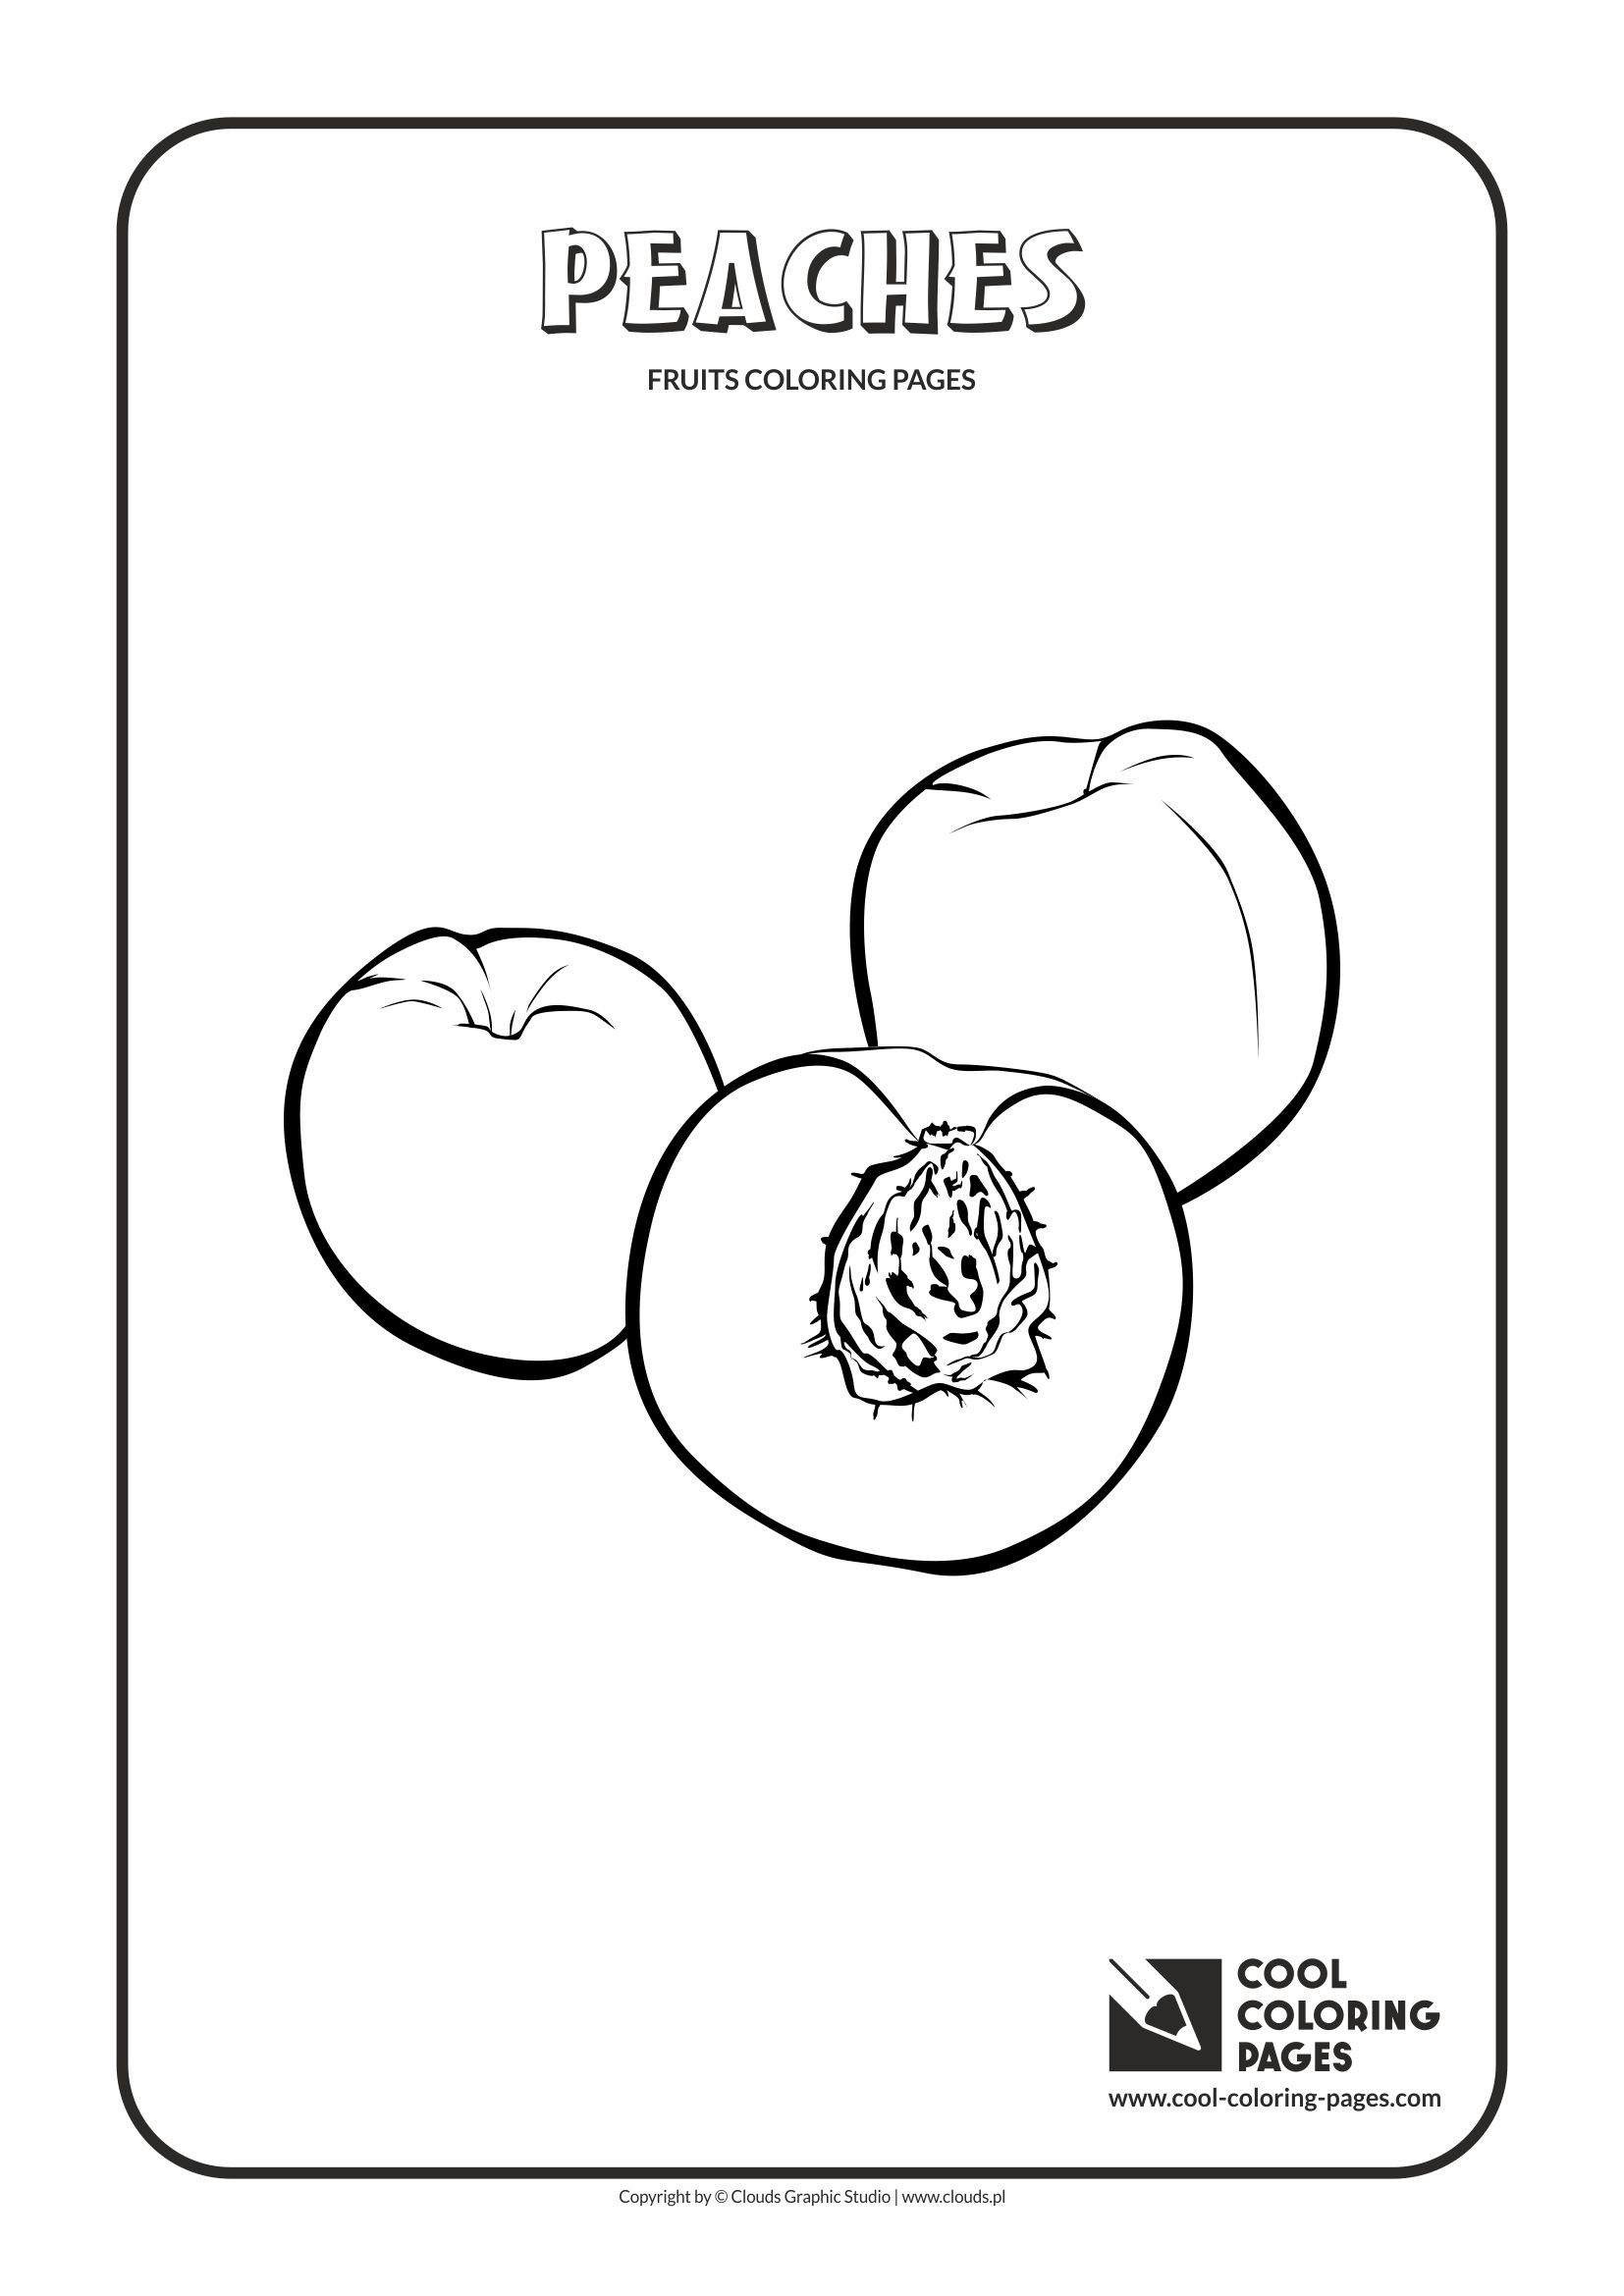 Cool Coloring Pages - Plants / Peaches / Coloring page with peaches